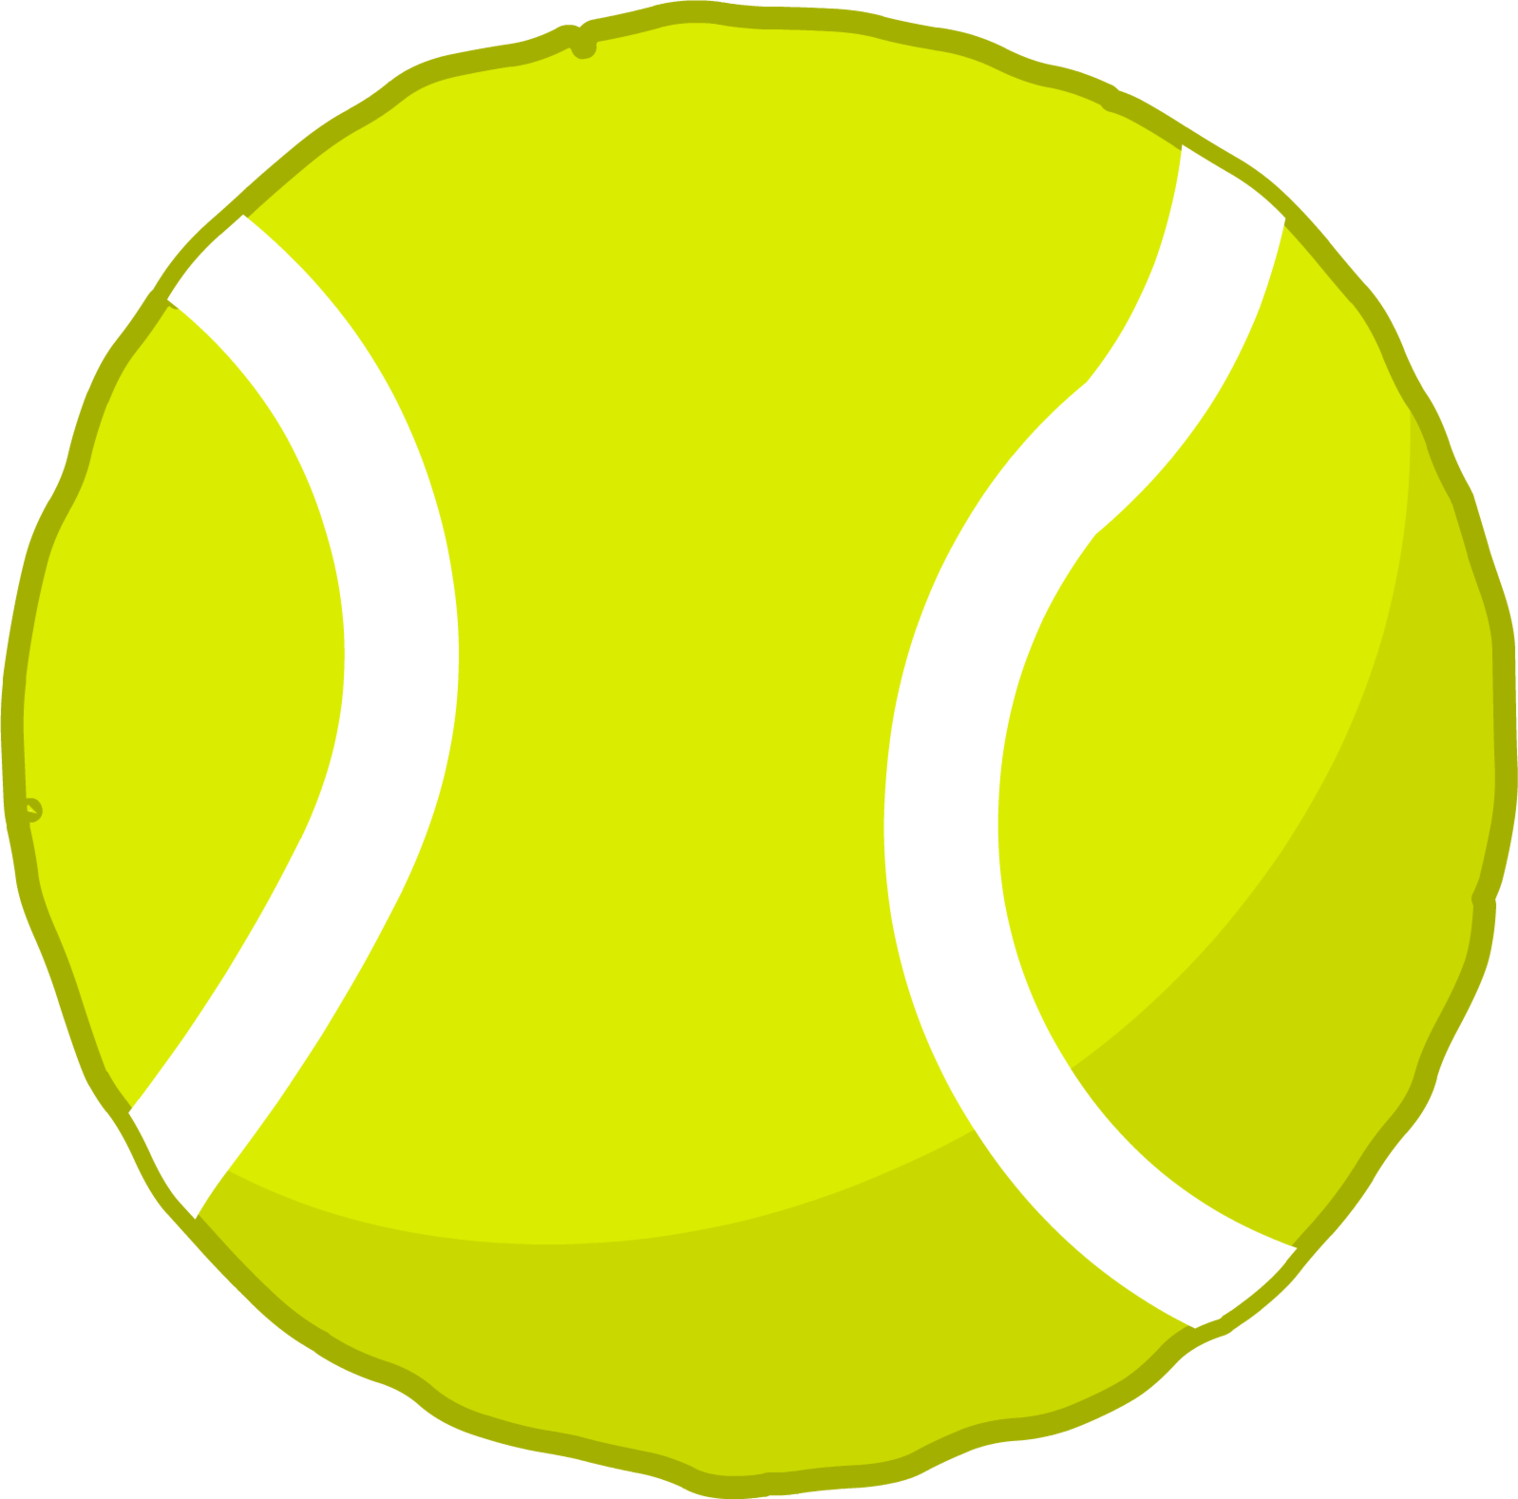 Picture Of Tennis Ball Clipart Free To U-Picture of tennis ball clipart free to use clip art resource-4